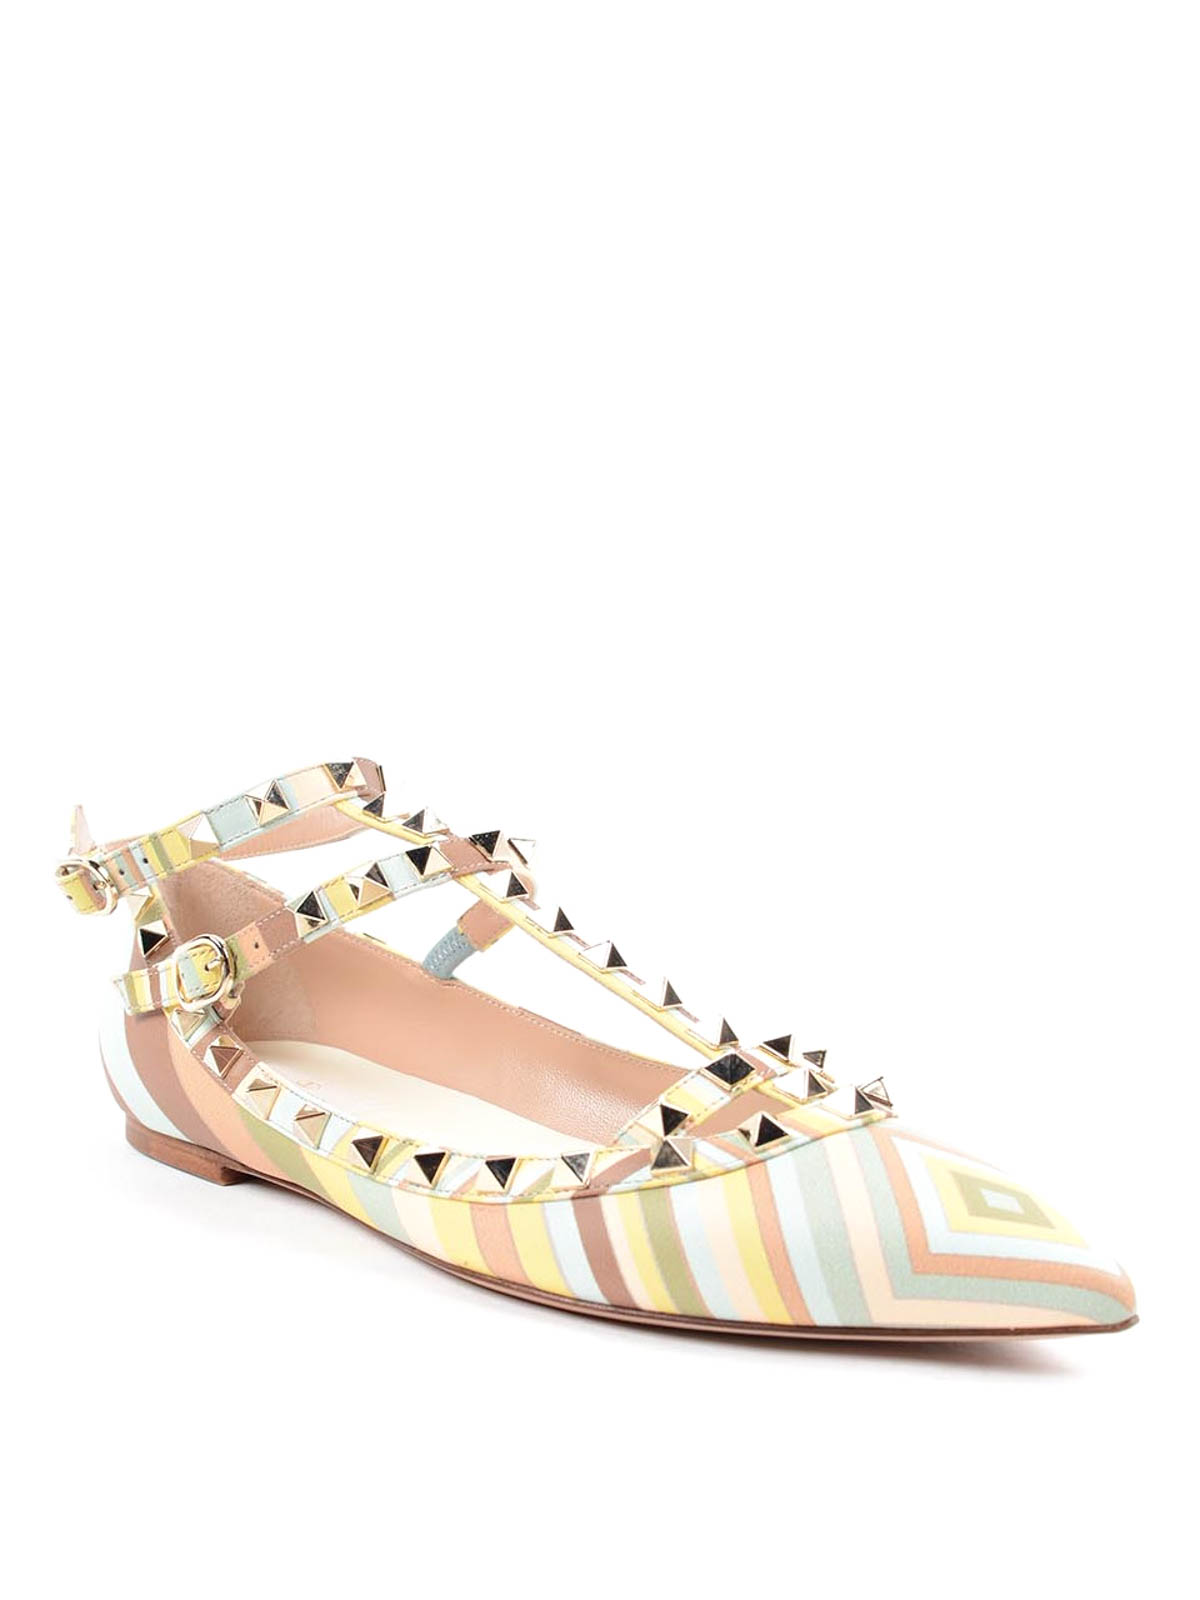 Valentino Native Couture Rockstud Pumps the cheapest online buy cheap with mastercard rVtcu